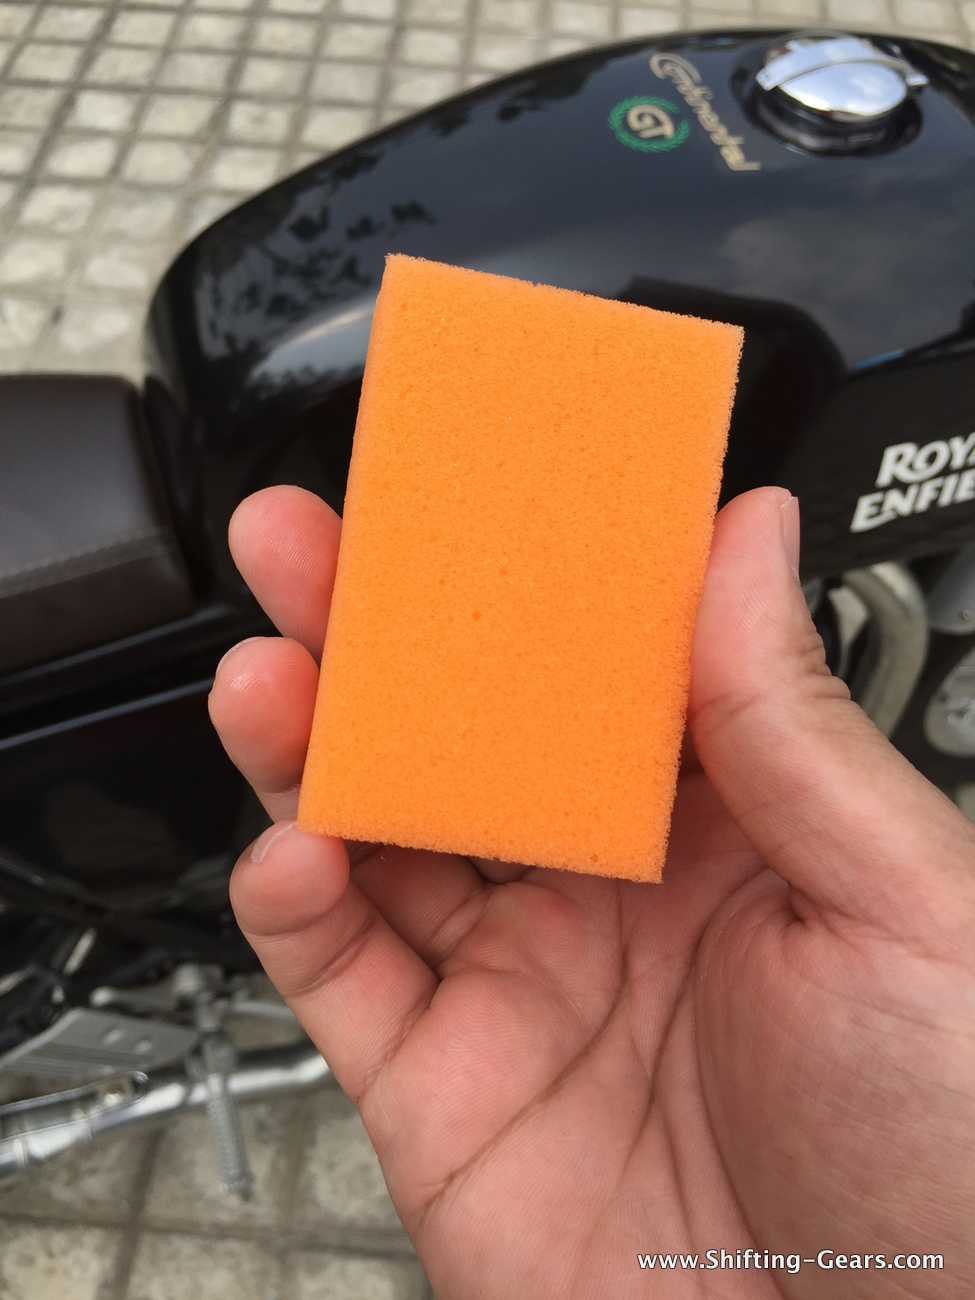 How the Insta Shine sponge looks, when unused